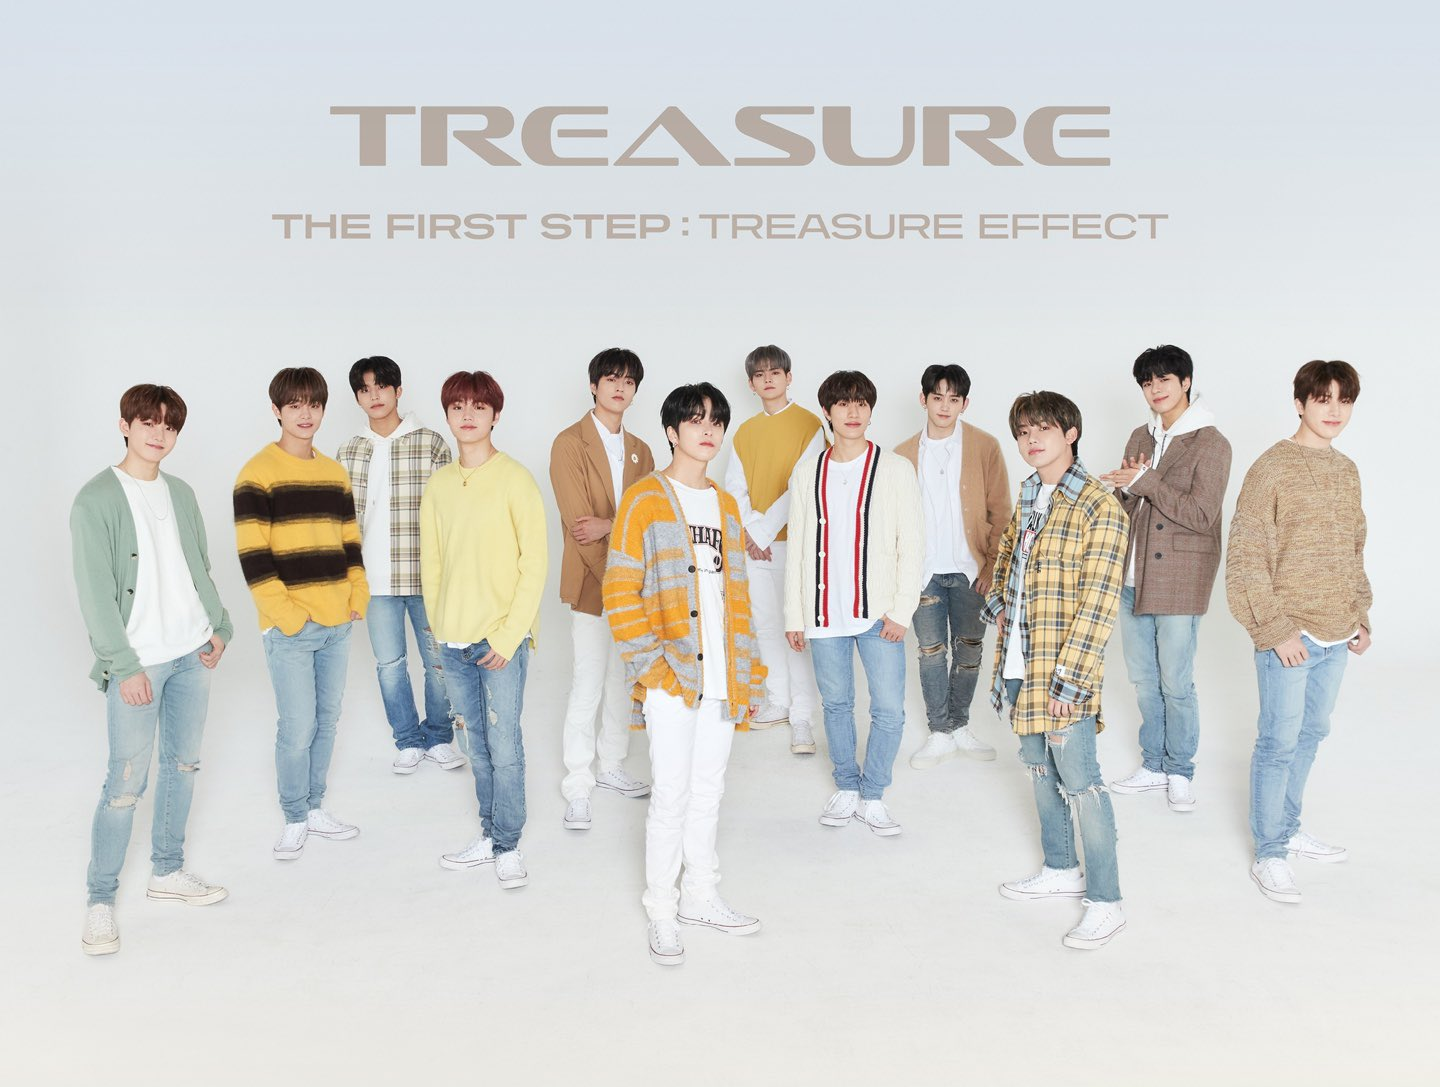 treasure debut japon